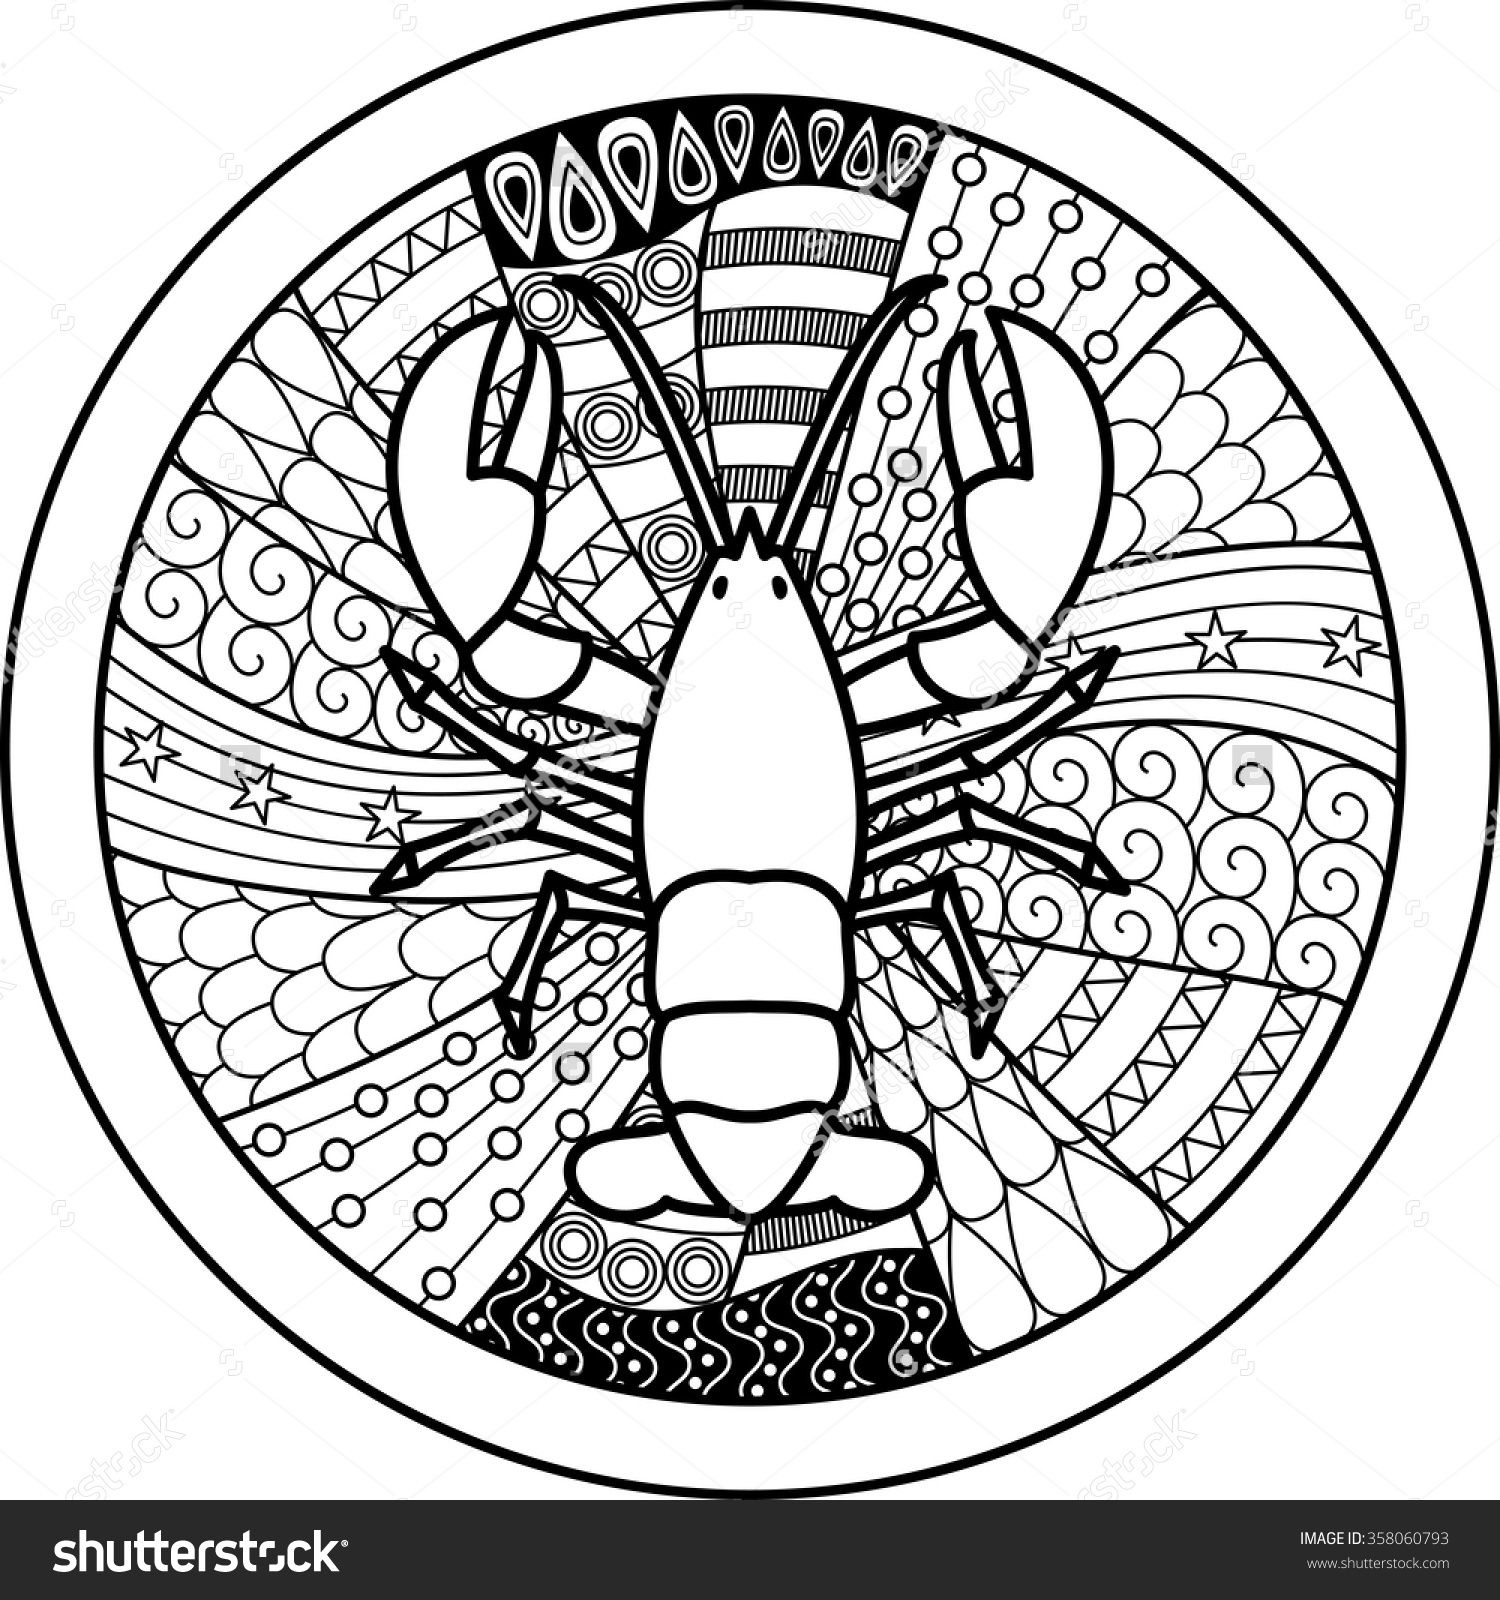 signs coloring pages - photo#29